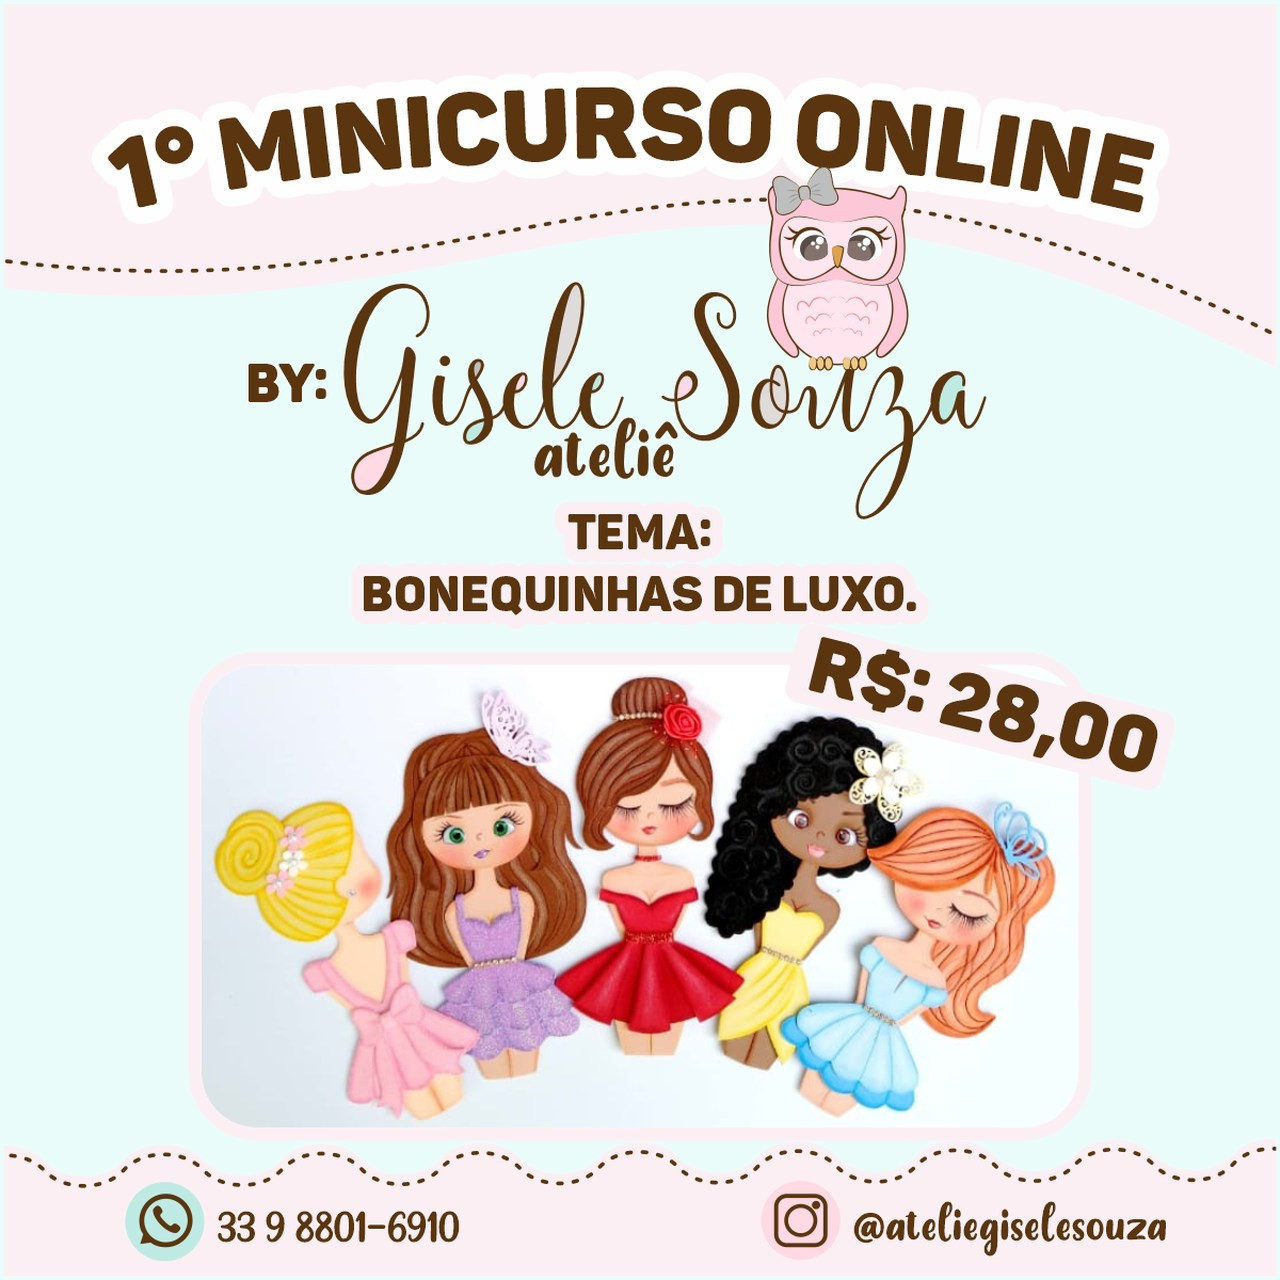 Mini Curso On line Bonequinhas de Luxo